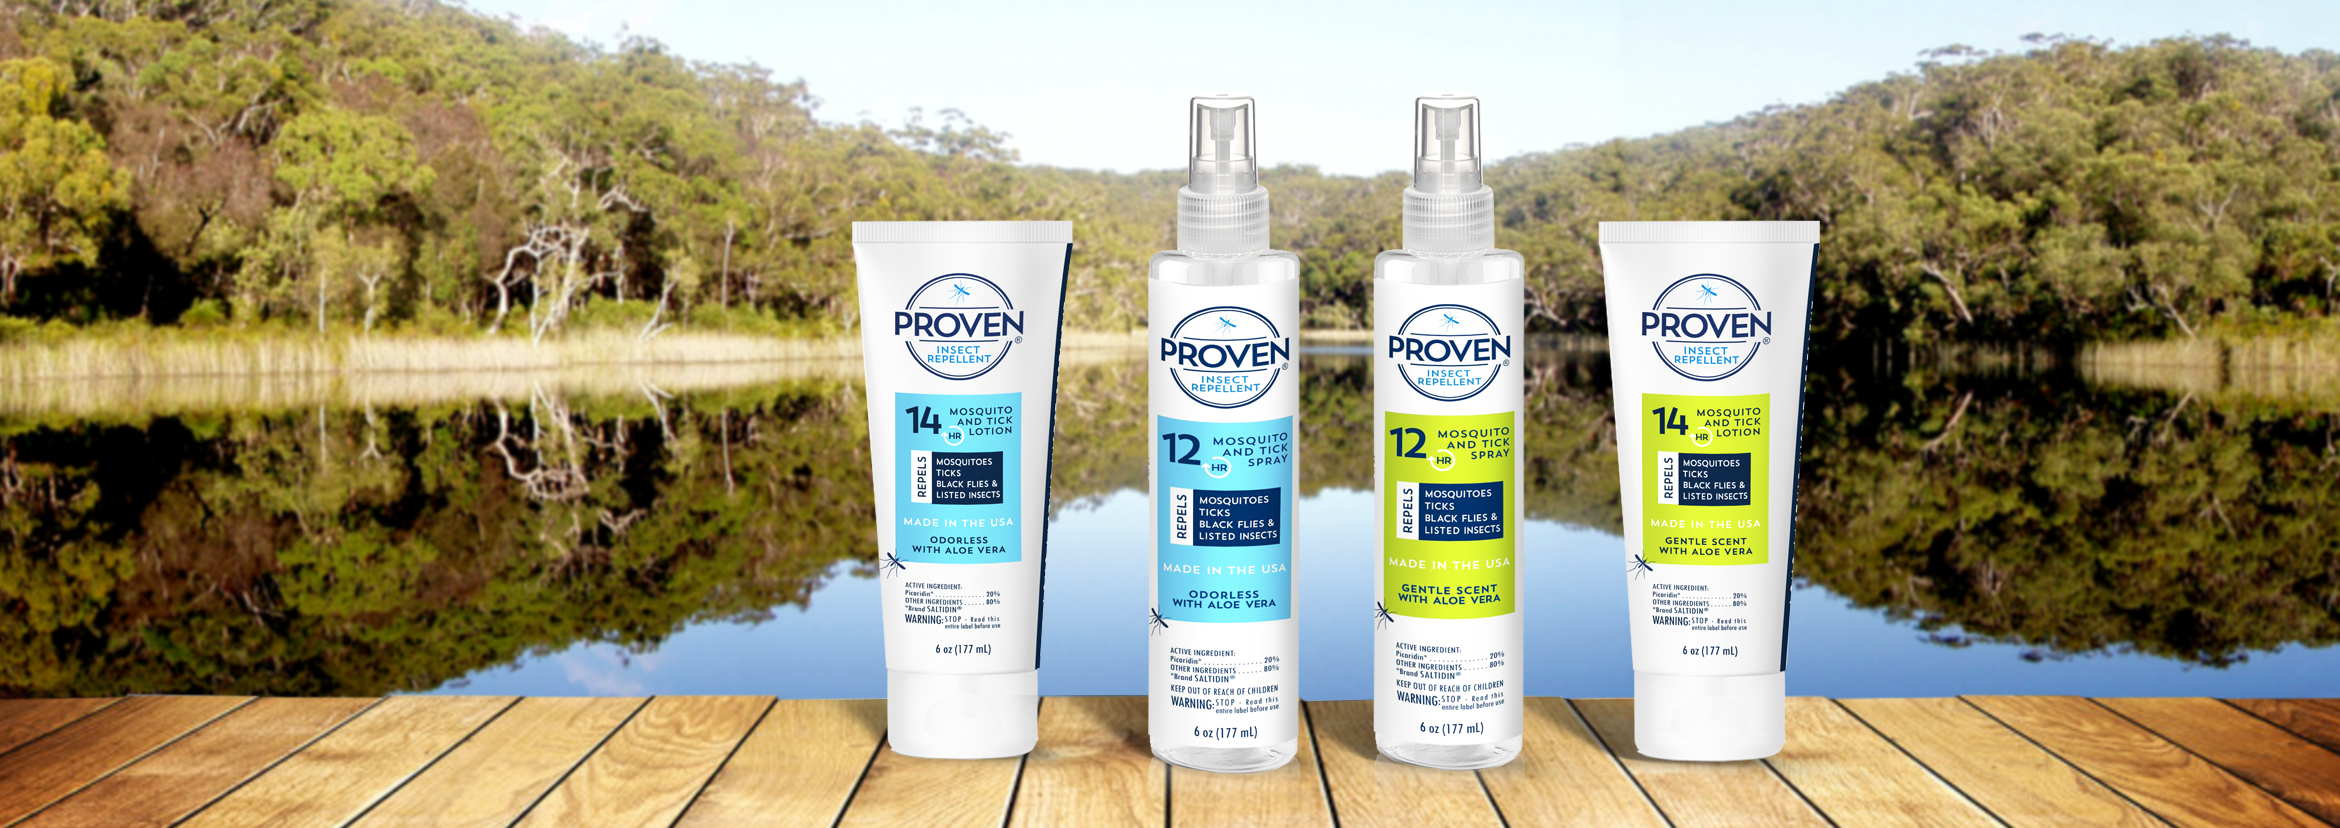 Proven_Insect_Repellent_Lotion_Spray_Effective_Safe_Lake